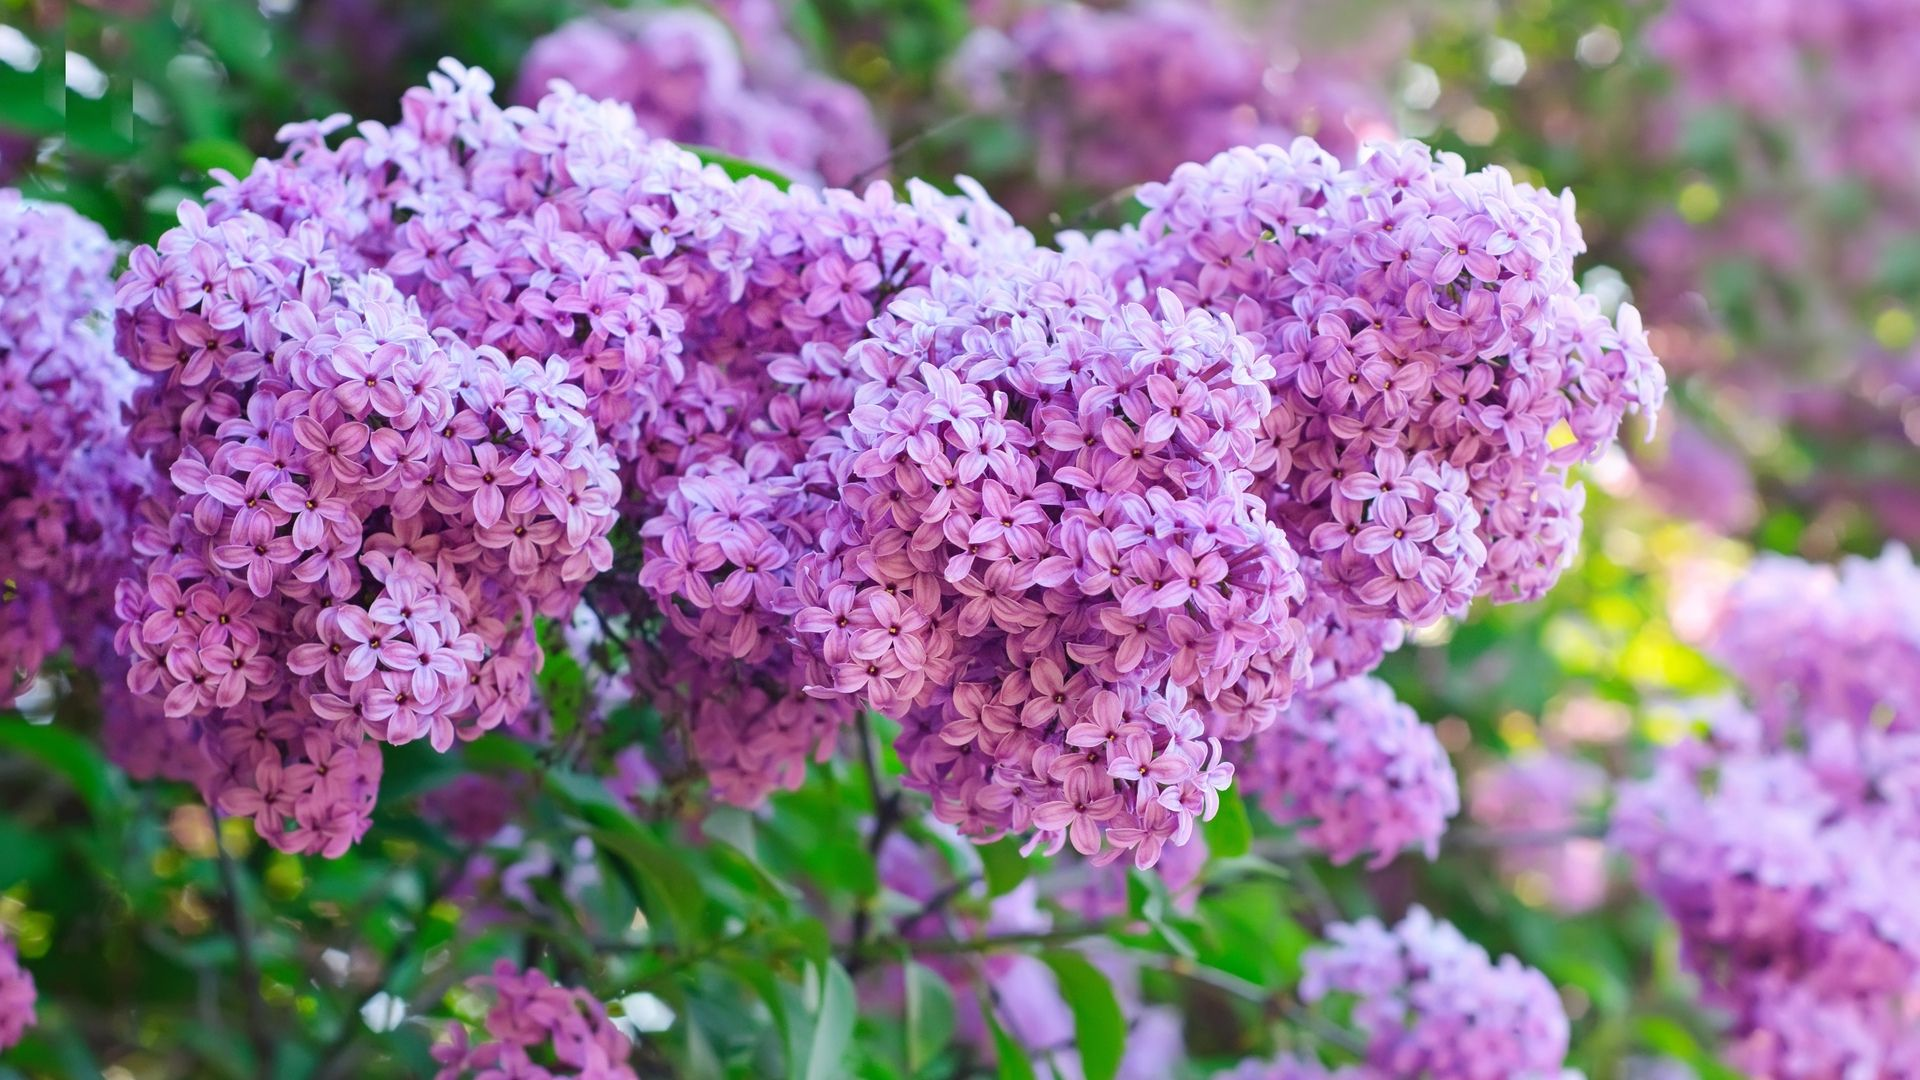 Lilac Flowers Lilacs Are Very Beautiful Plants When In Bloom In May They Are Very Magnificant Their Fragra Edible Flower Garden Lilac Plant Flower Seeds